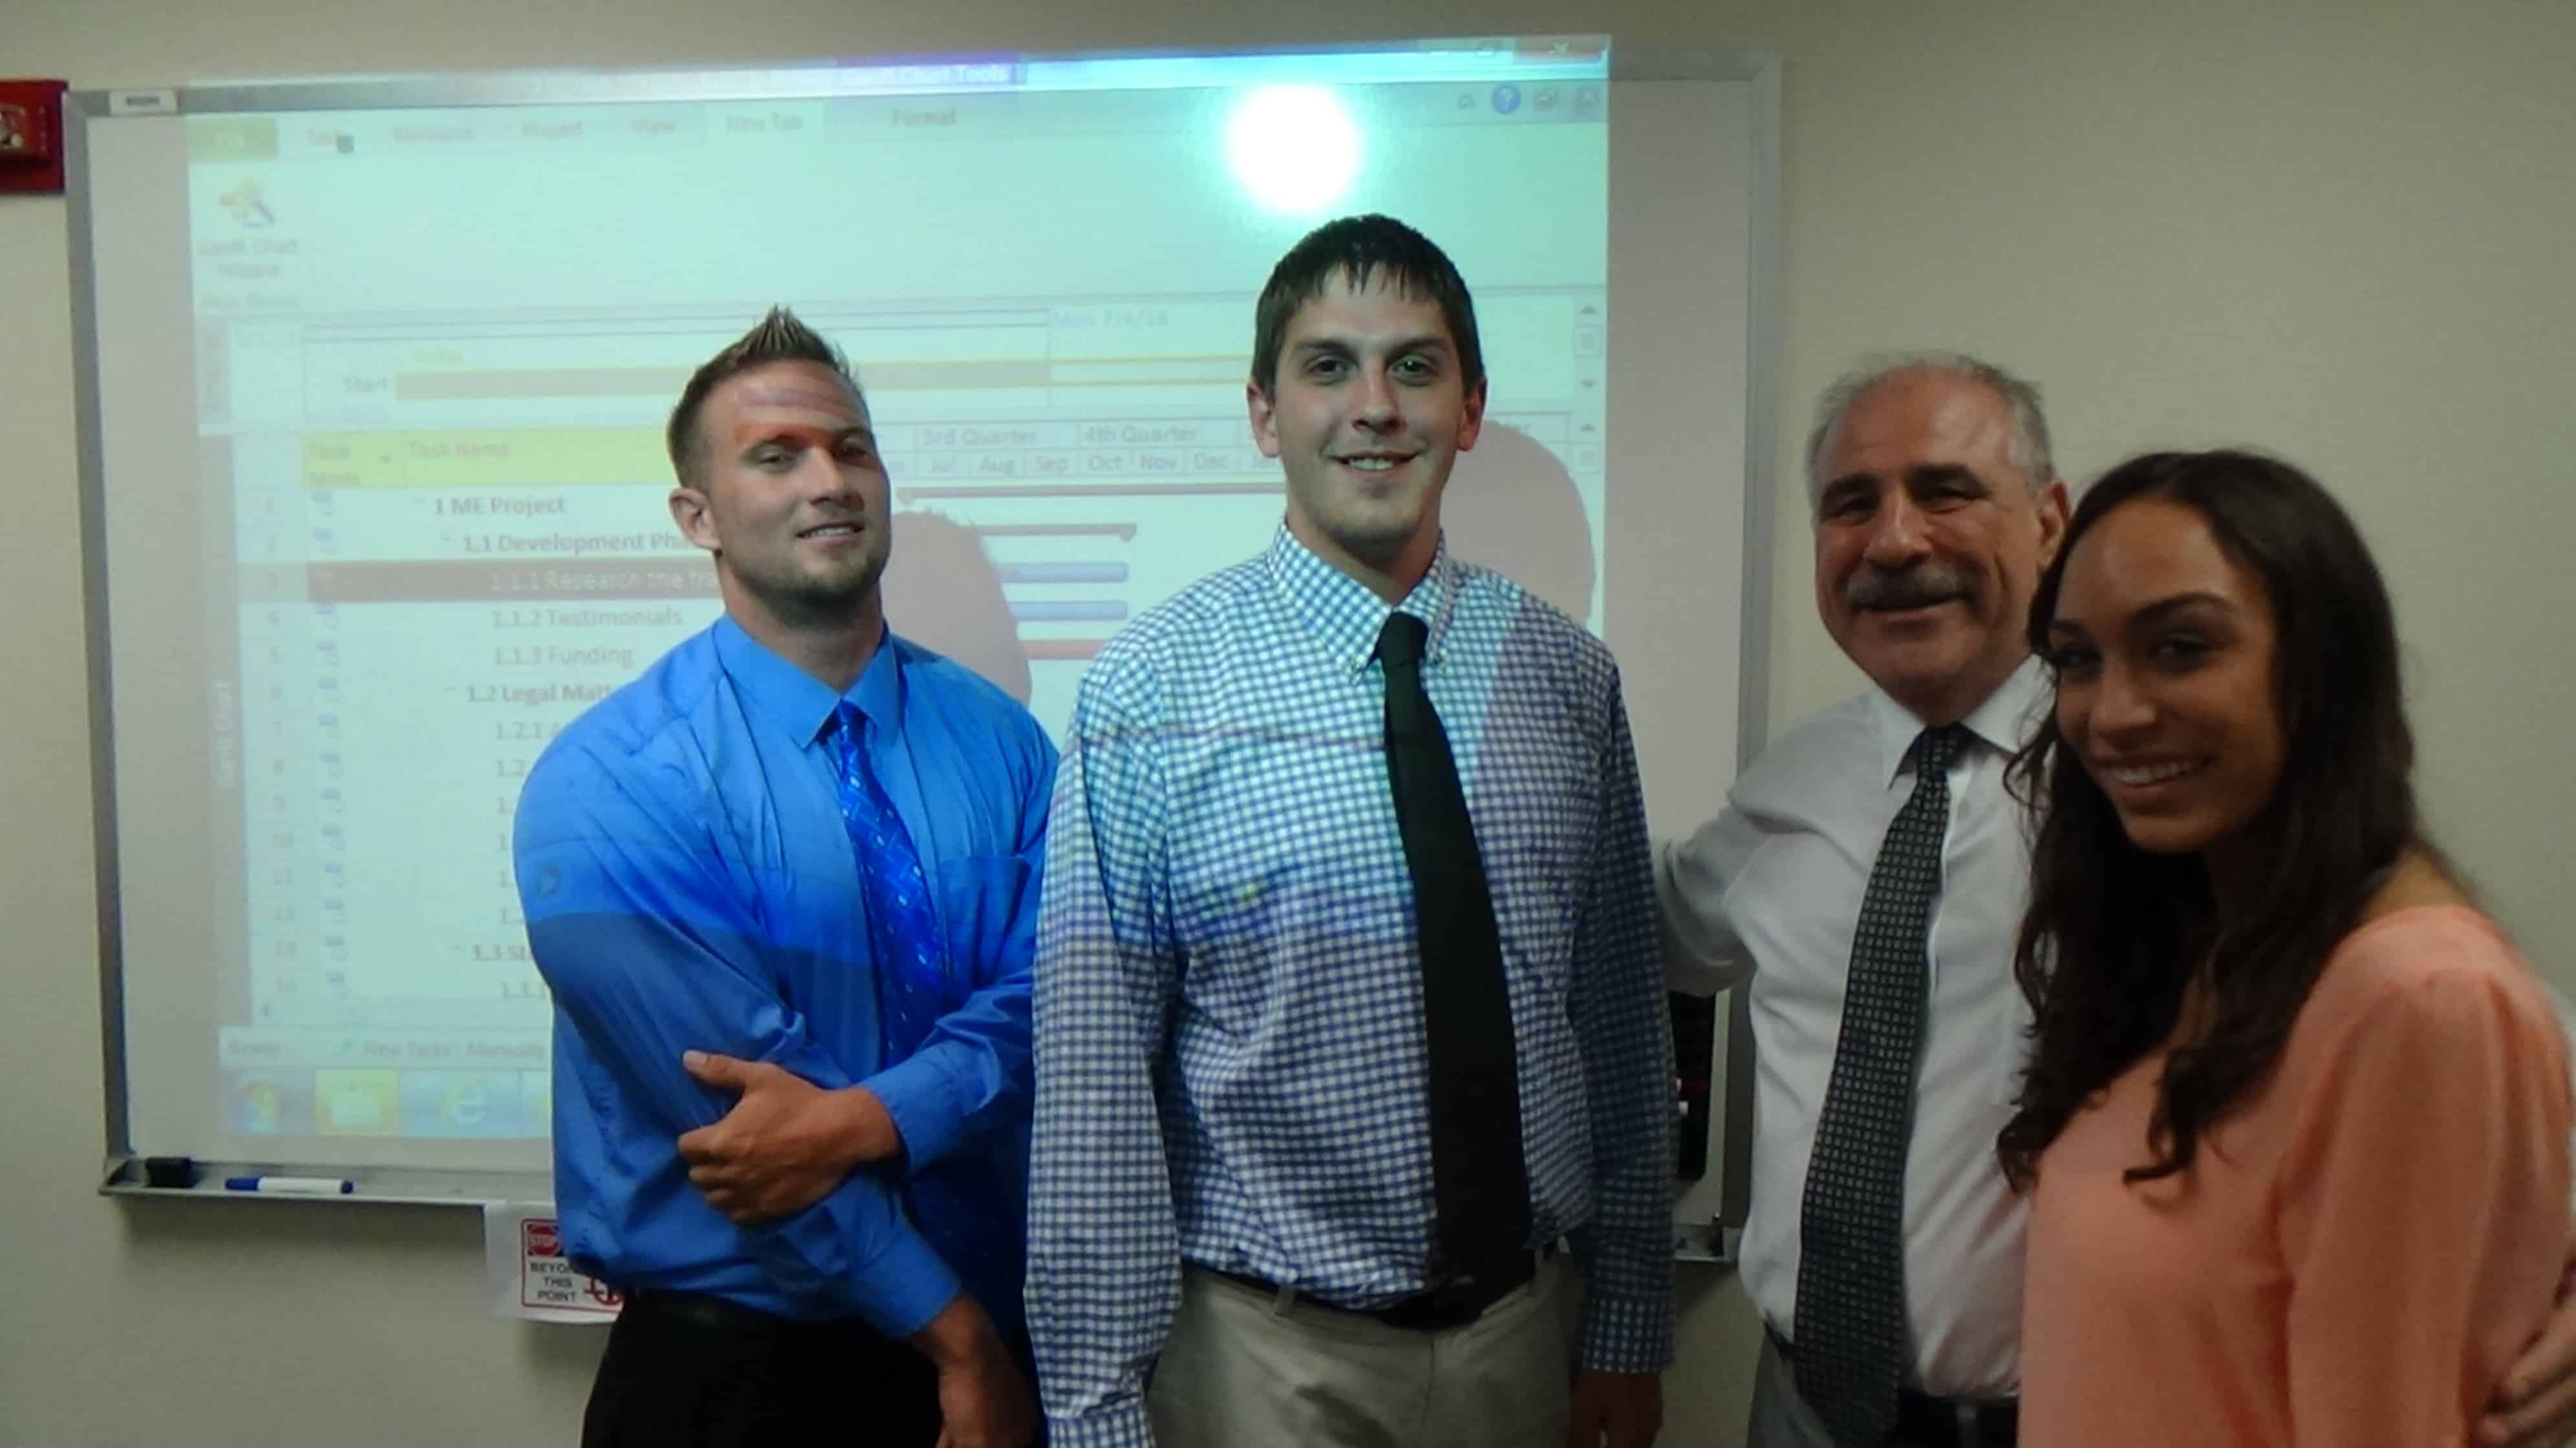 Business Students in Sarasota Present Their Final Team Project